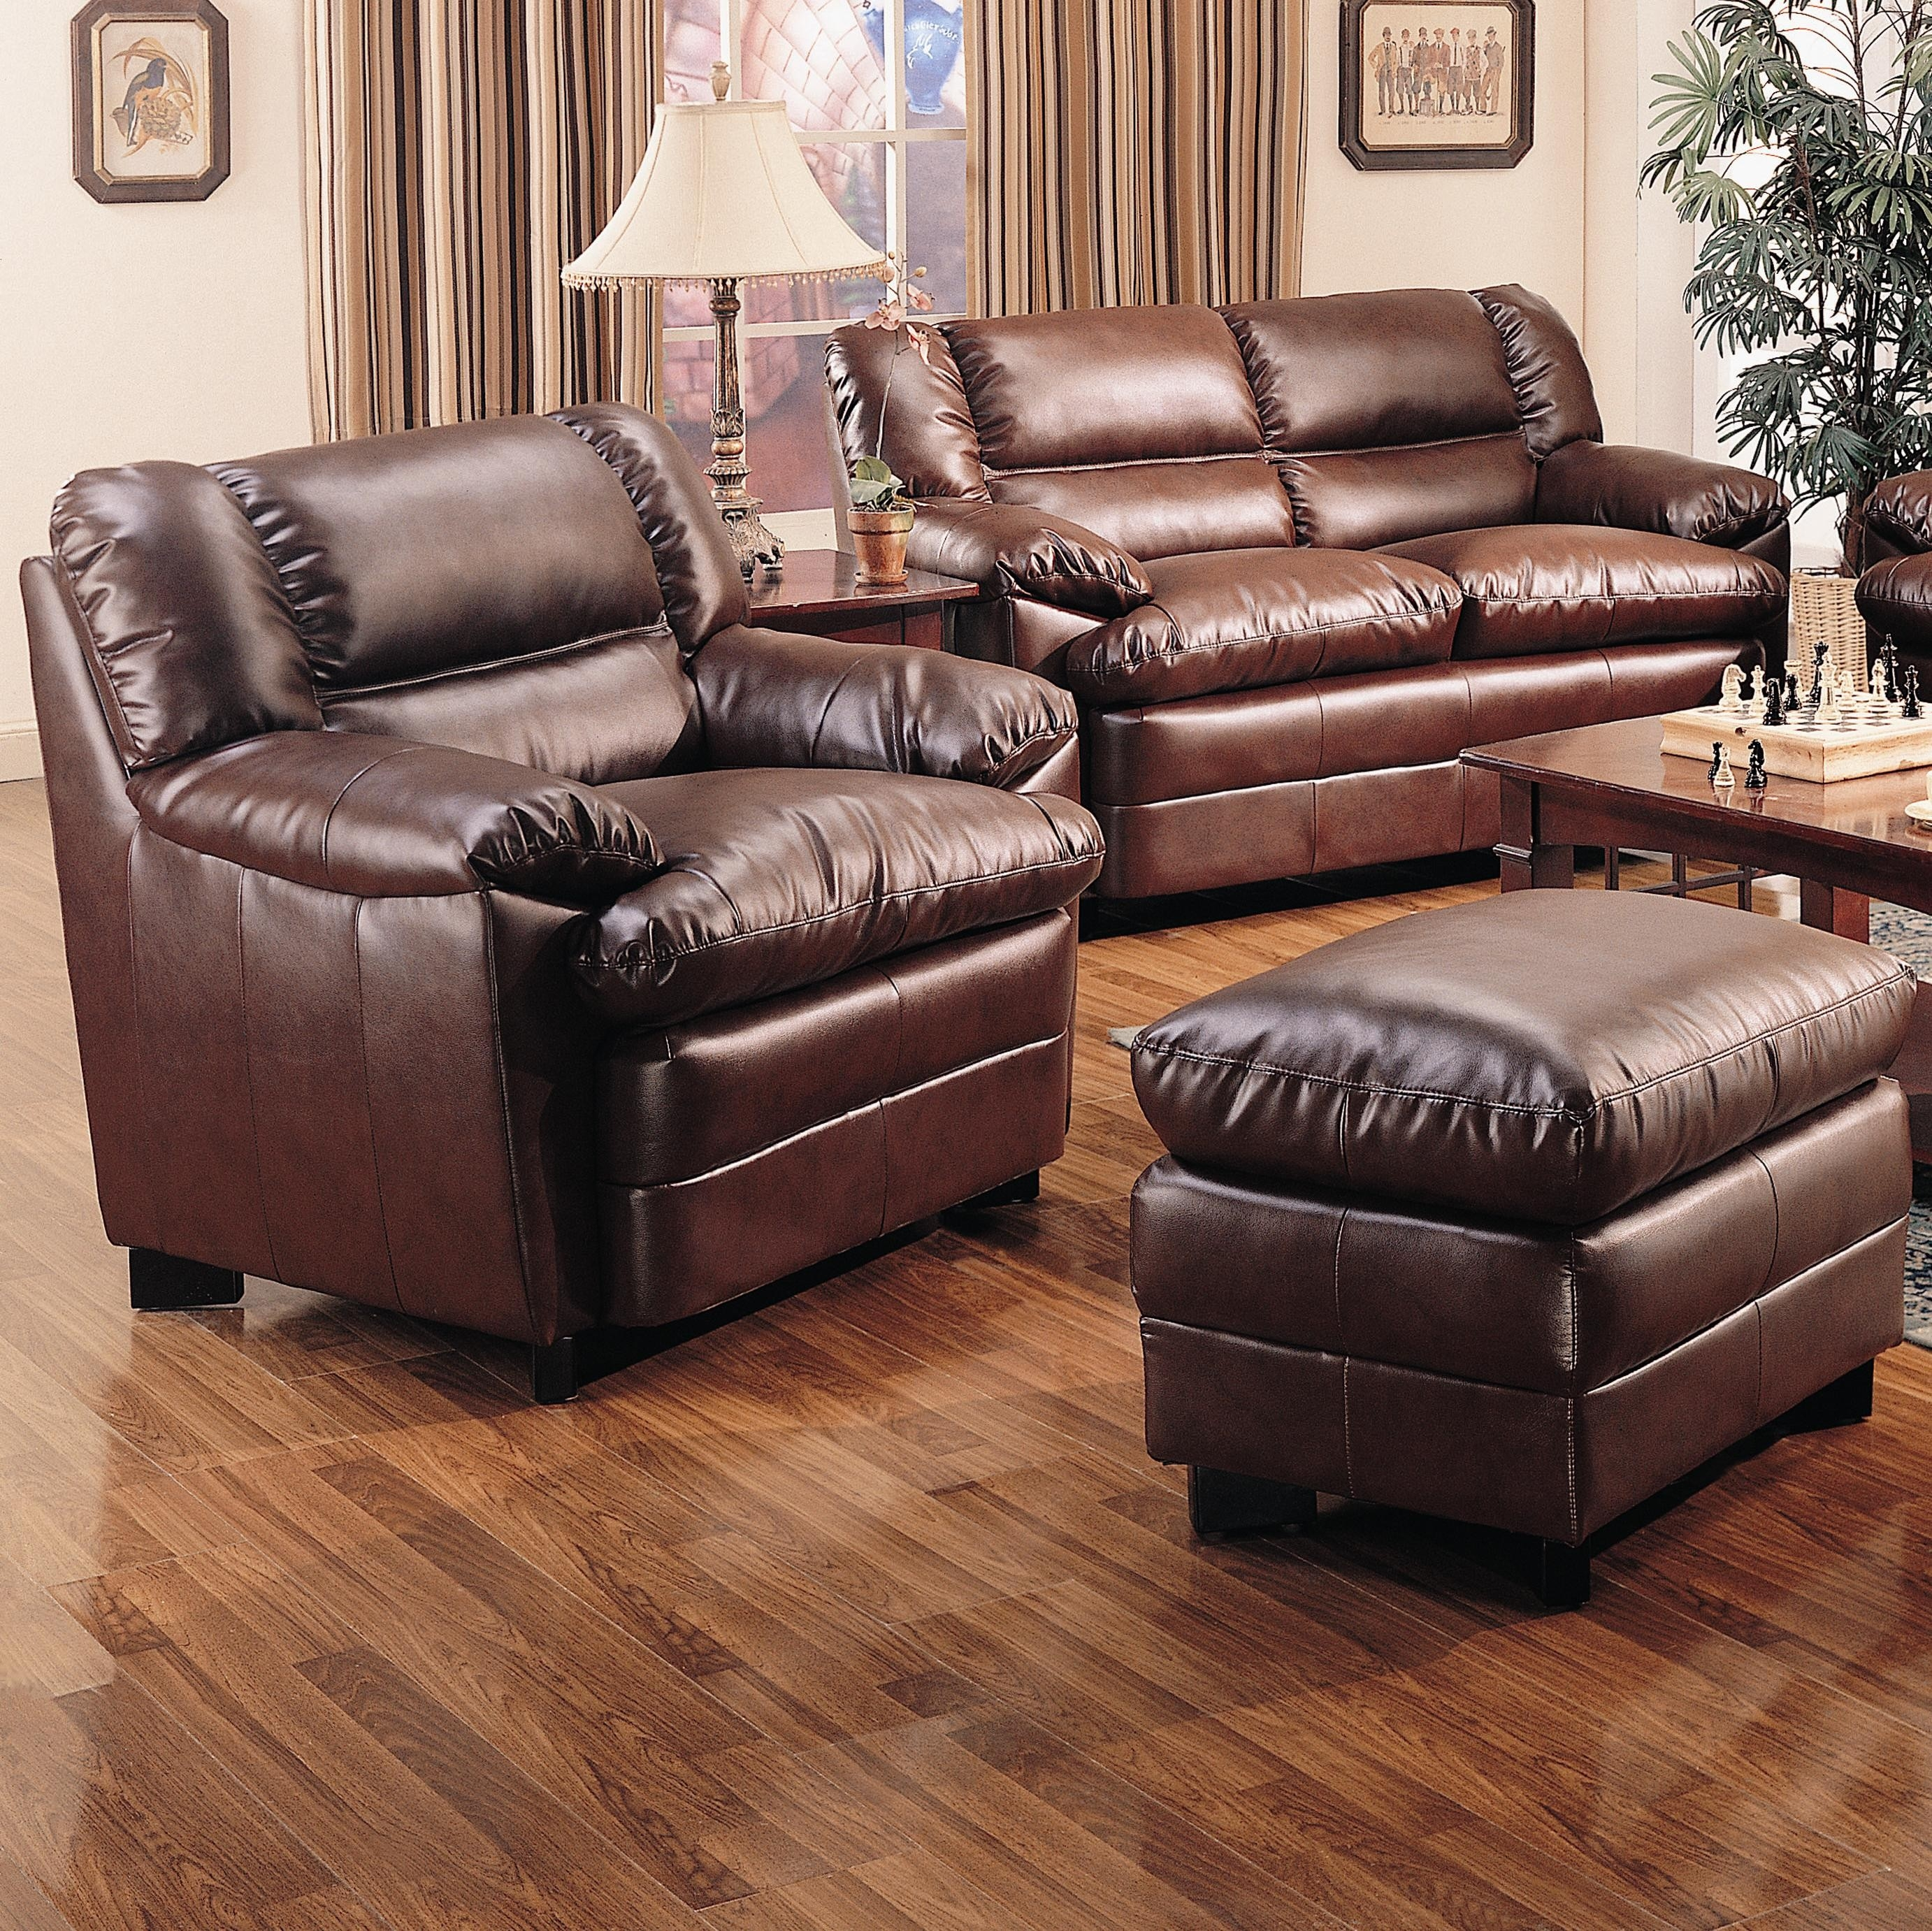 Harper Overstuffed Leather Chair With Ottoman Lowest Price Sofa With Overstuffed Sofas And Chairs (View 5 of 15)